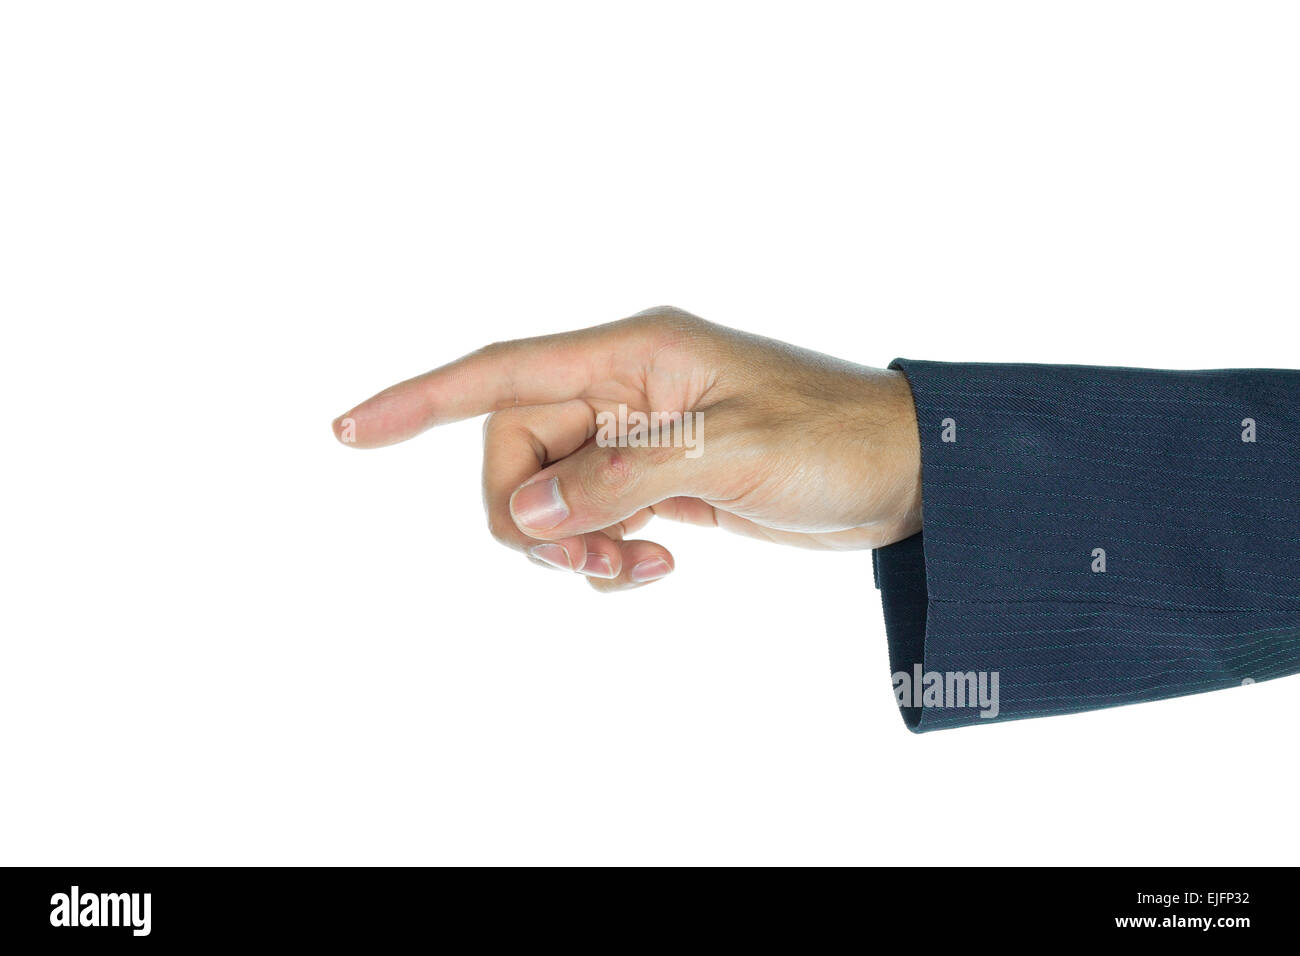 Businessman touching or pushing screen interface on white background. Index finger of businessman is pressing button. Stock Photo